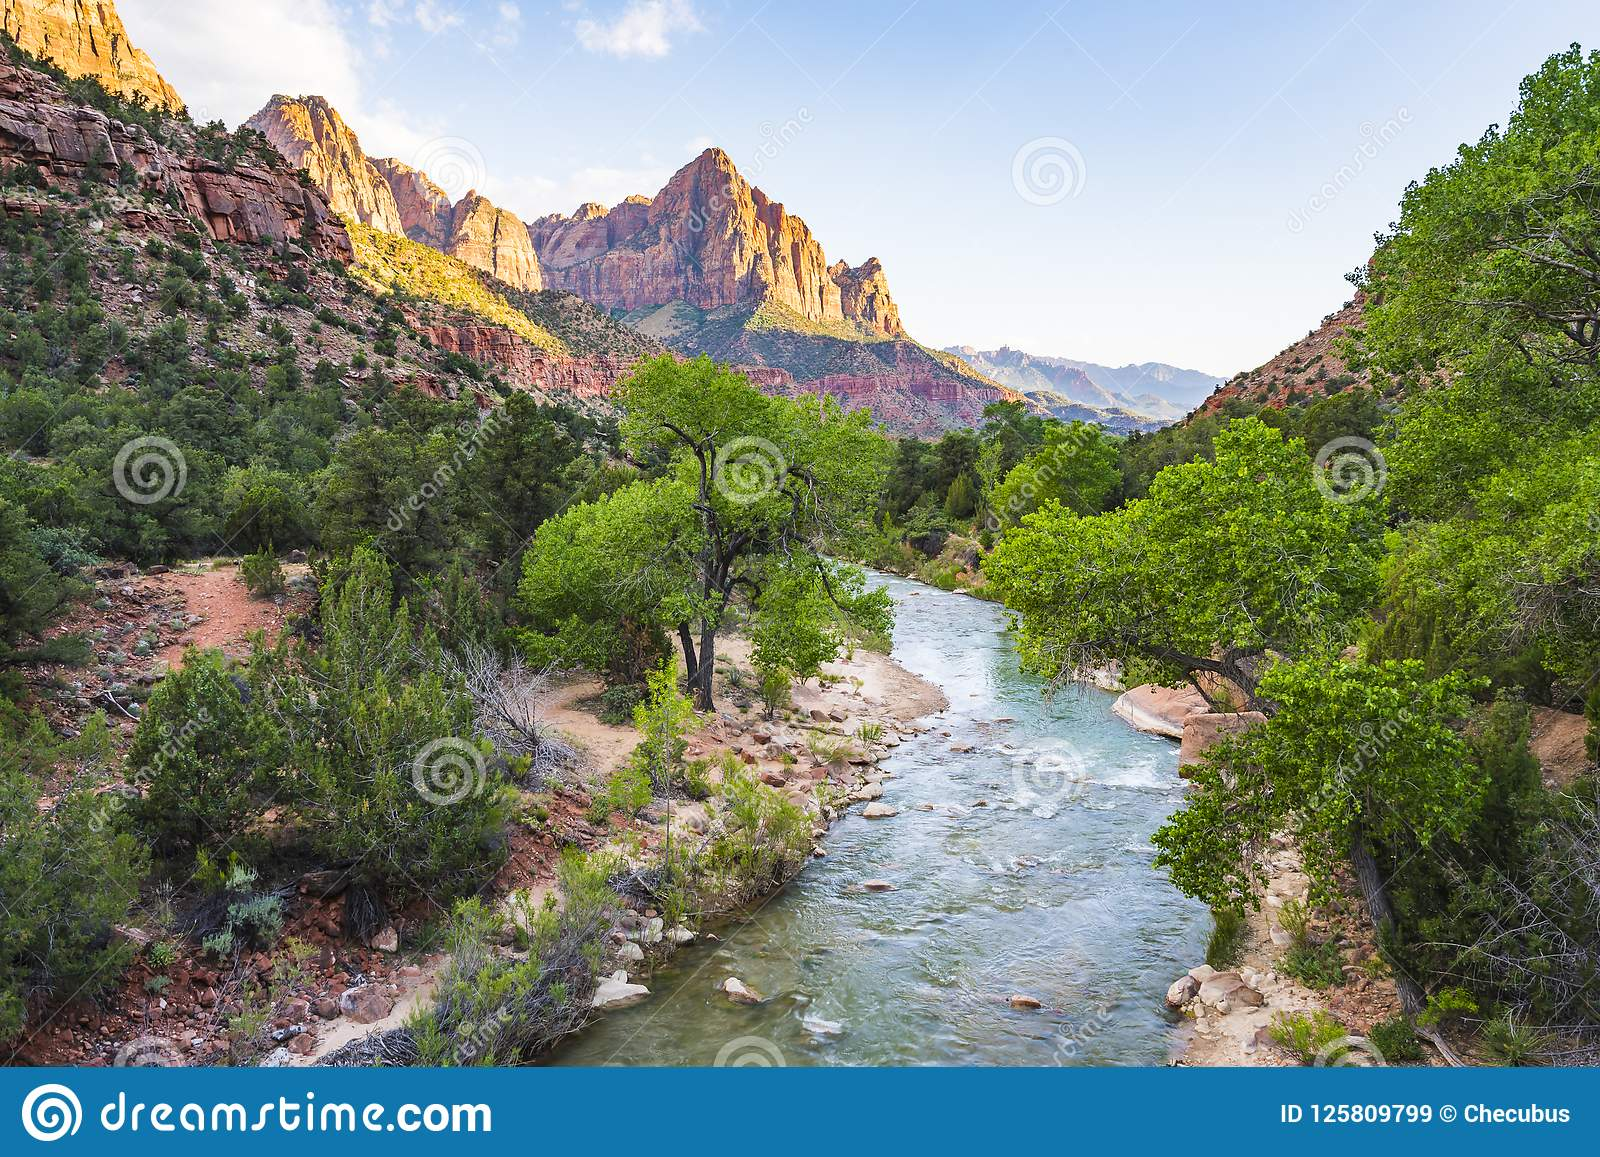 Pin by Aditya on Beautiful Places | Zion national park